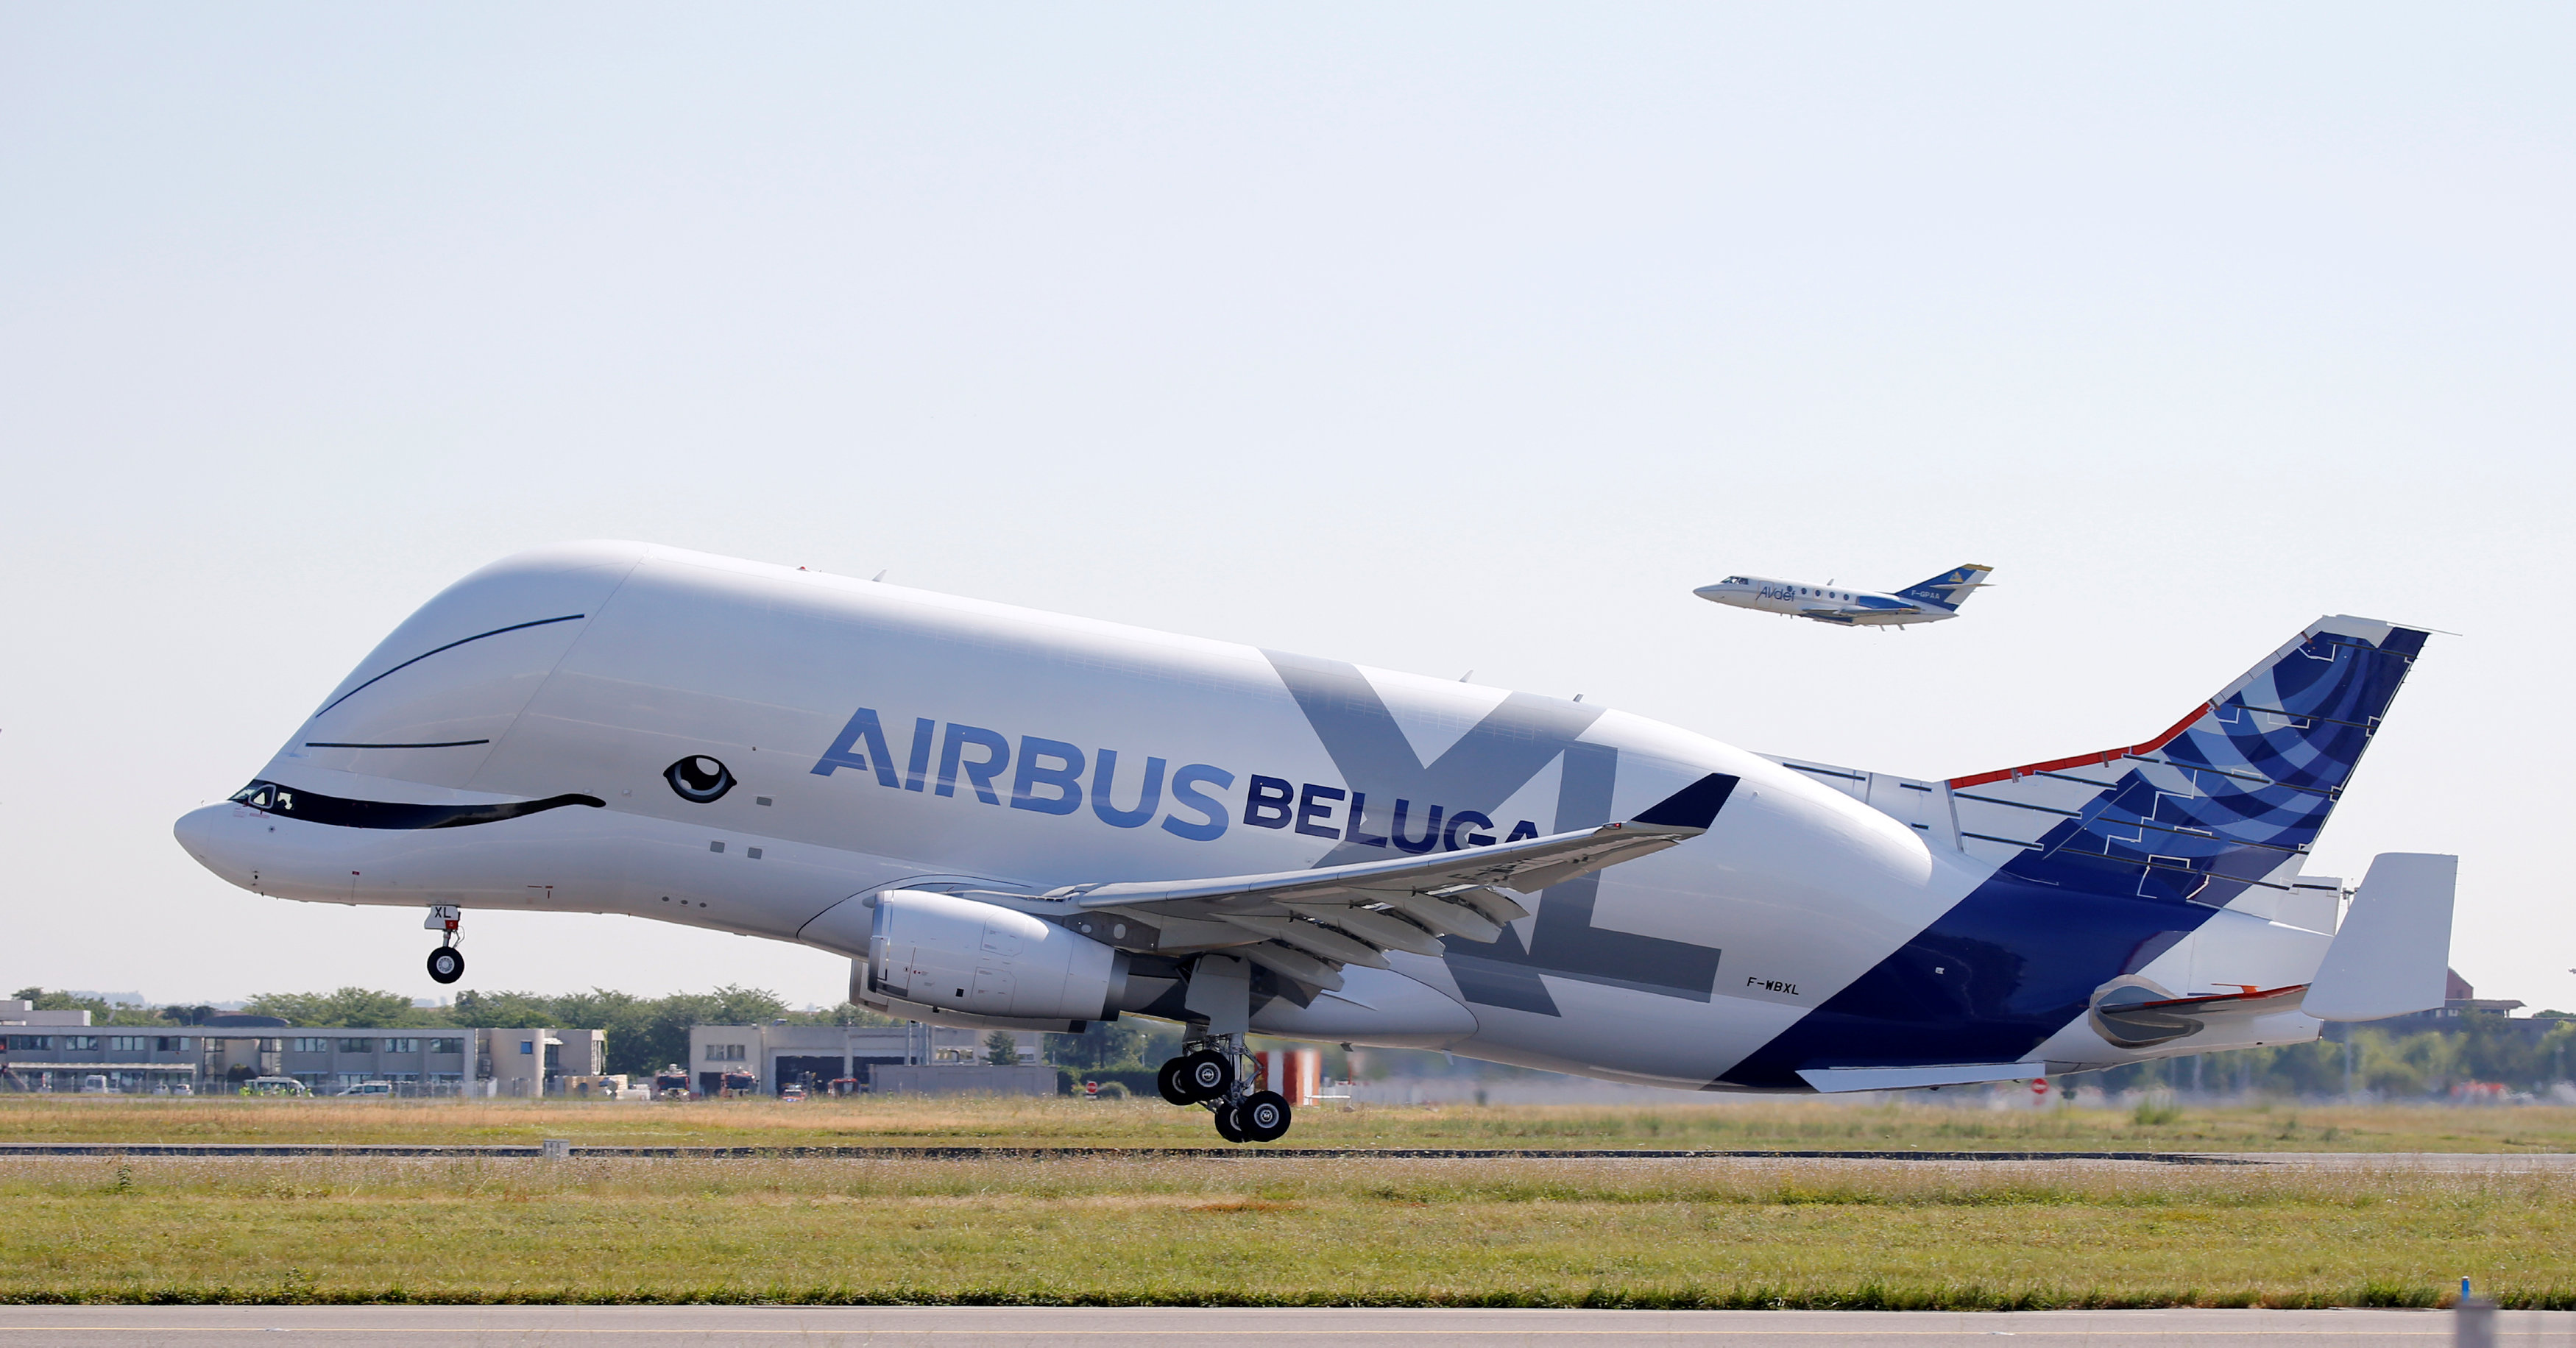 An Airbus Beluga XL transport plane takes off during its first flight event in Colomiers near Toulouse, France, July 19, 2018/REUTERS